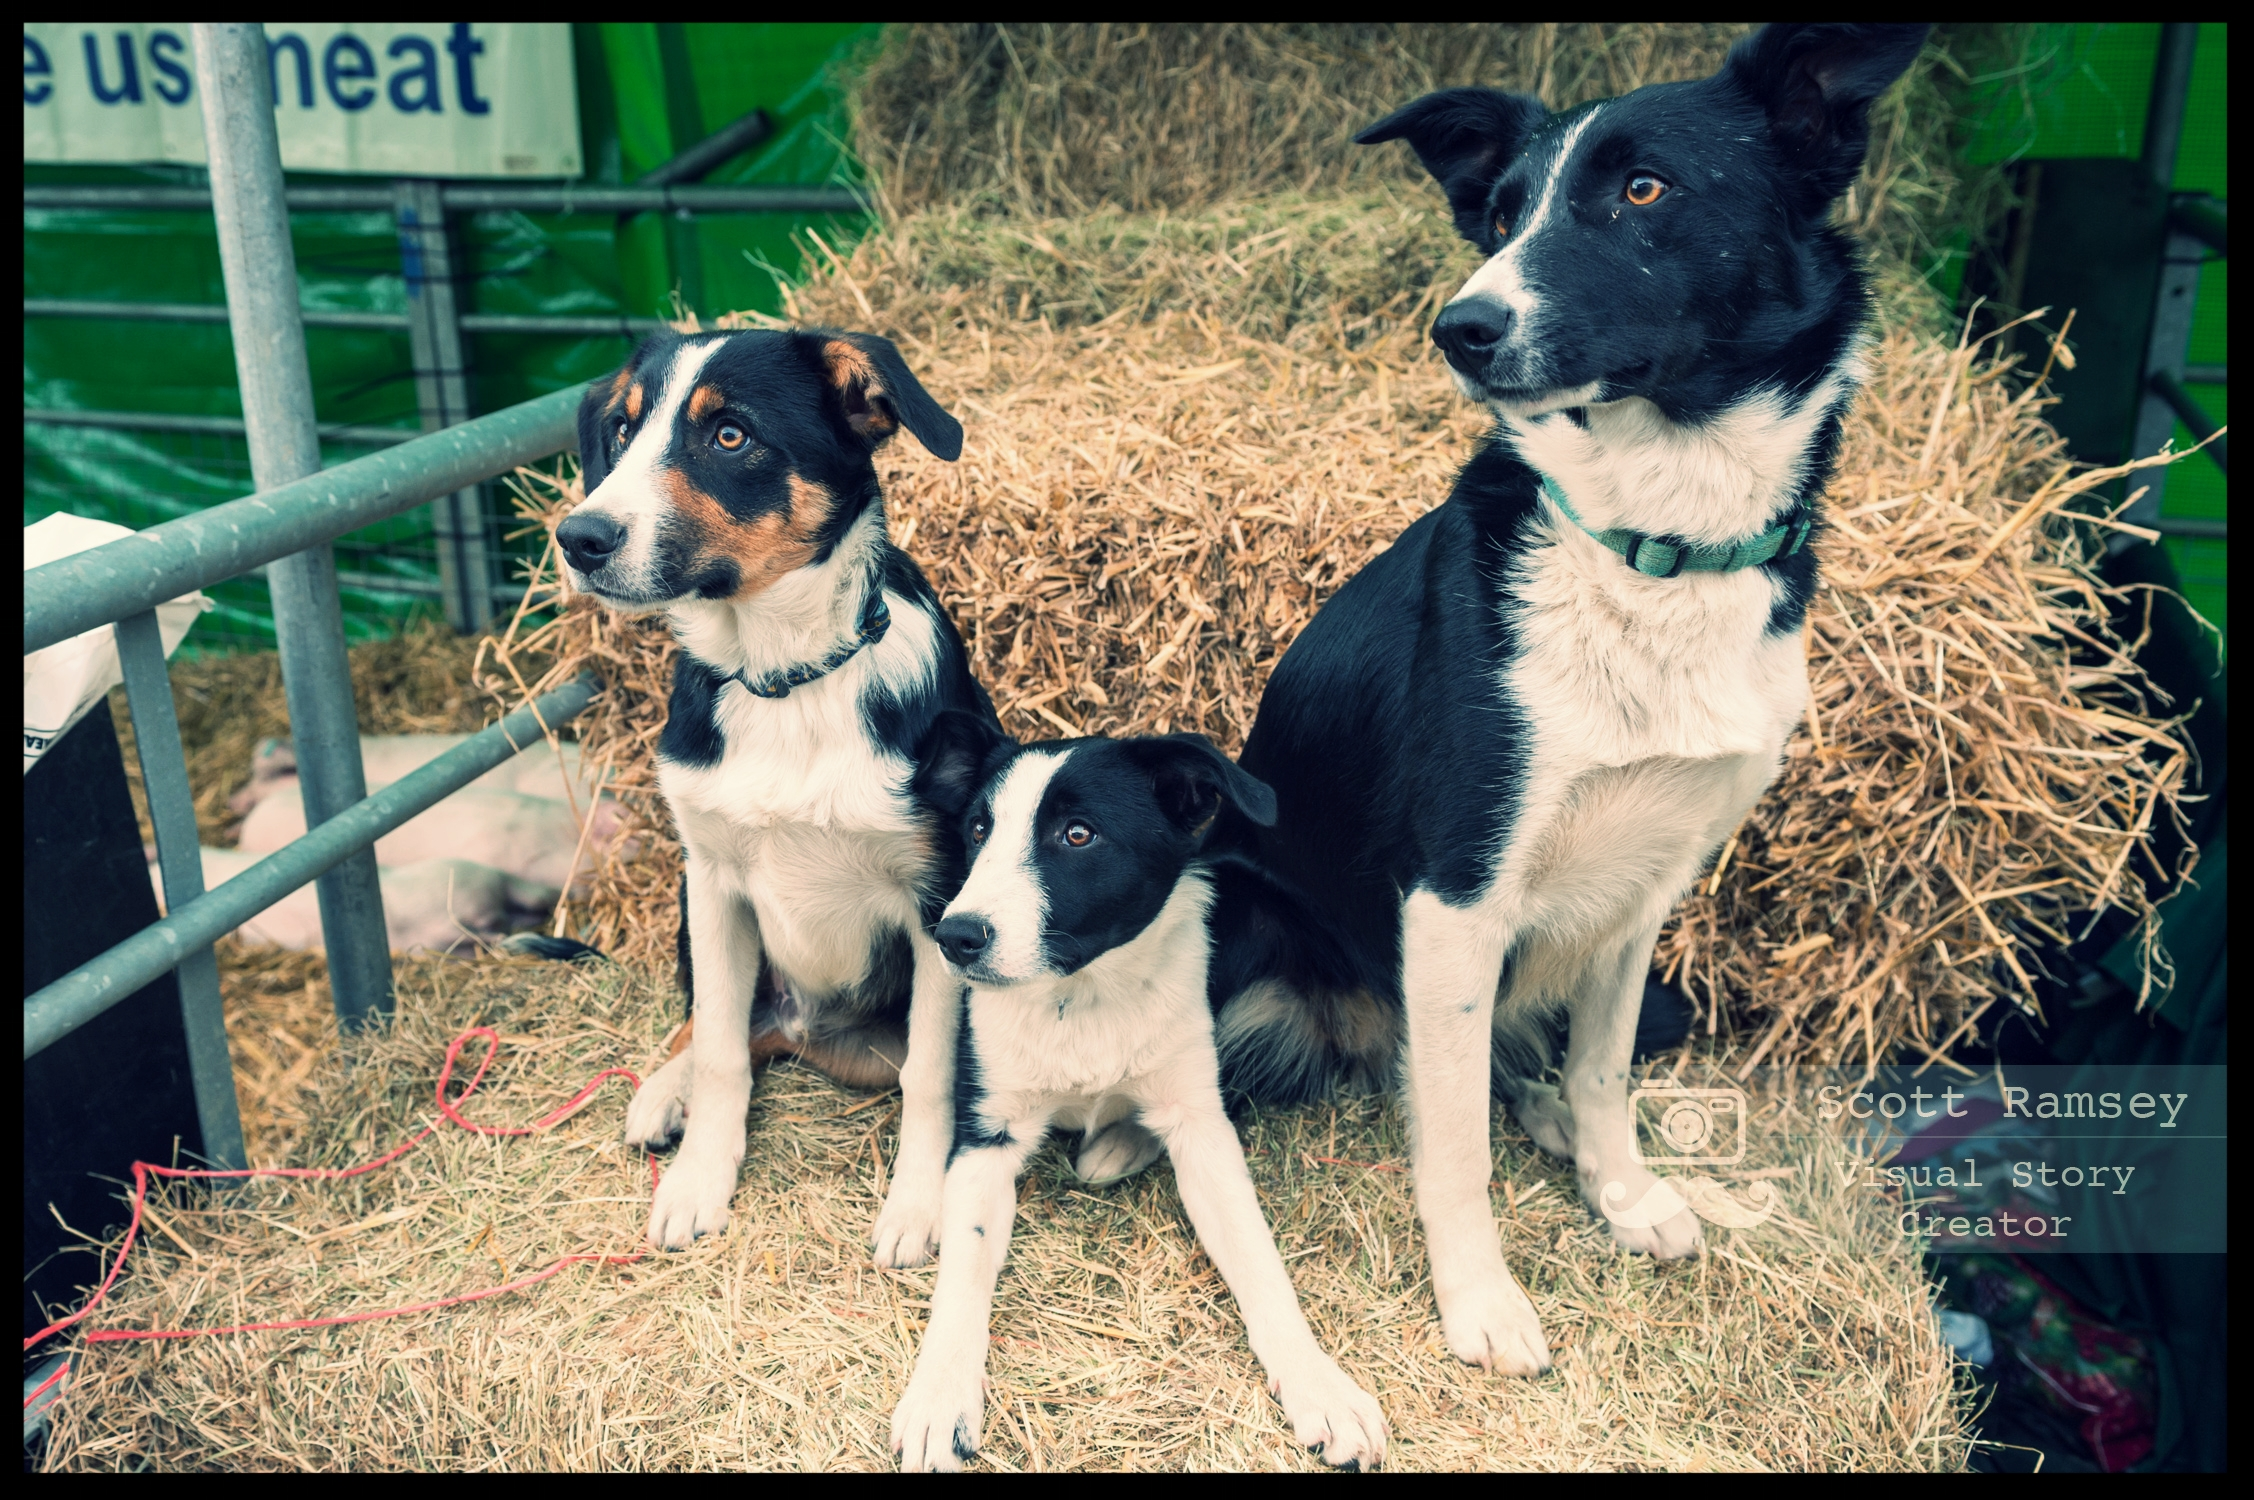 Brighton Photographer Scott Ramsey on assignment at the South Of England Show. A sheepdog and her puppies pose for a photo on a hay bale at the South Of England Show. Photo © Scott Ramsey